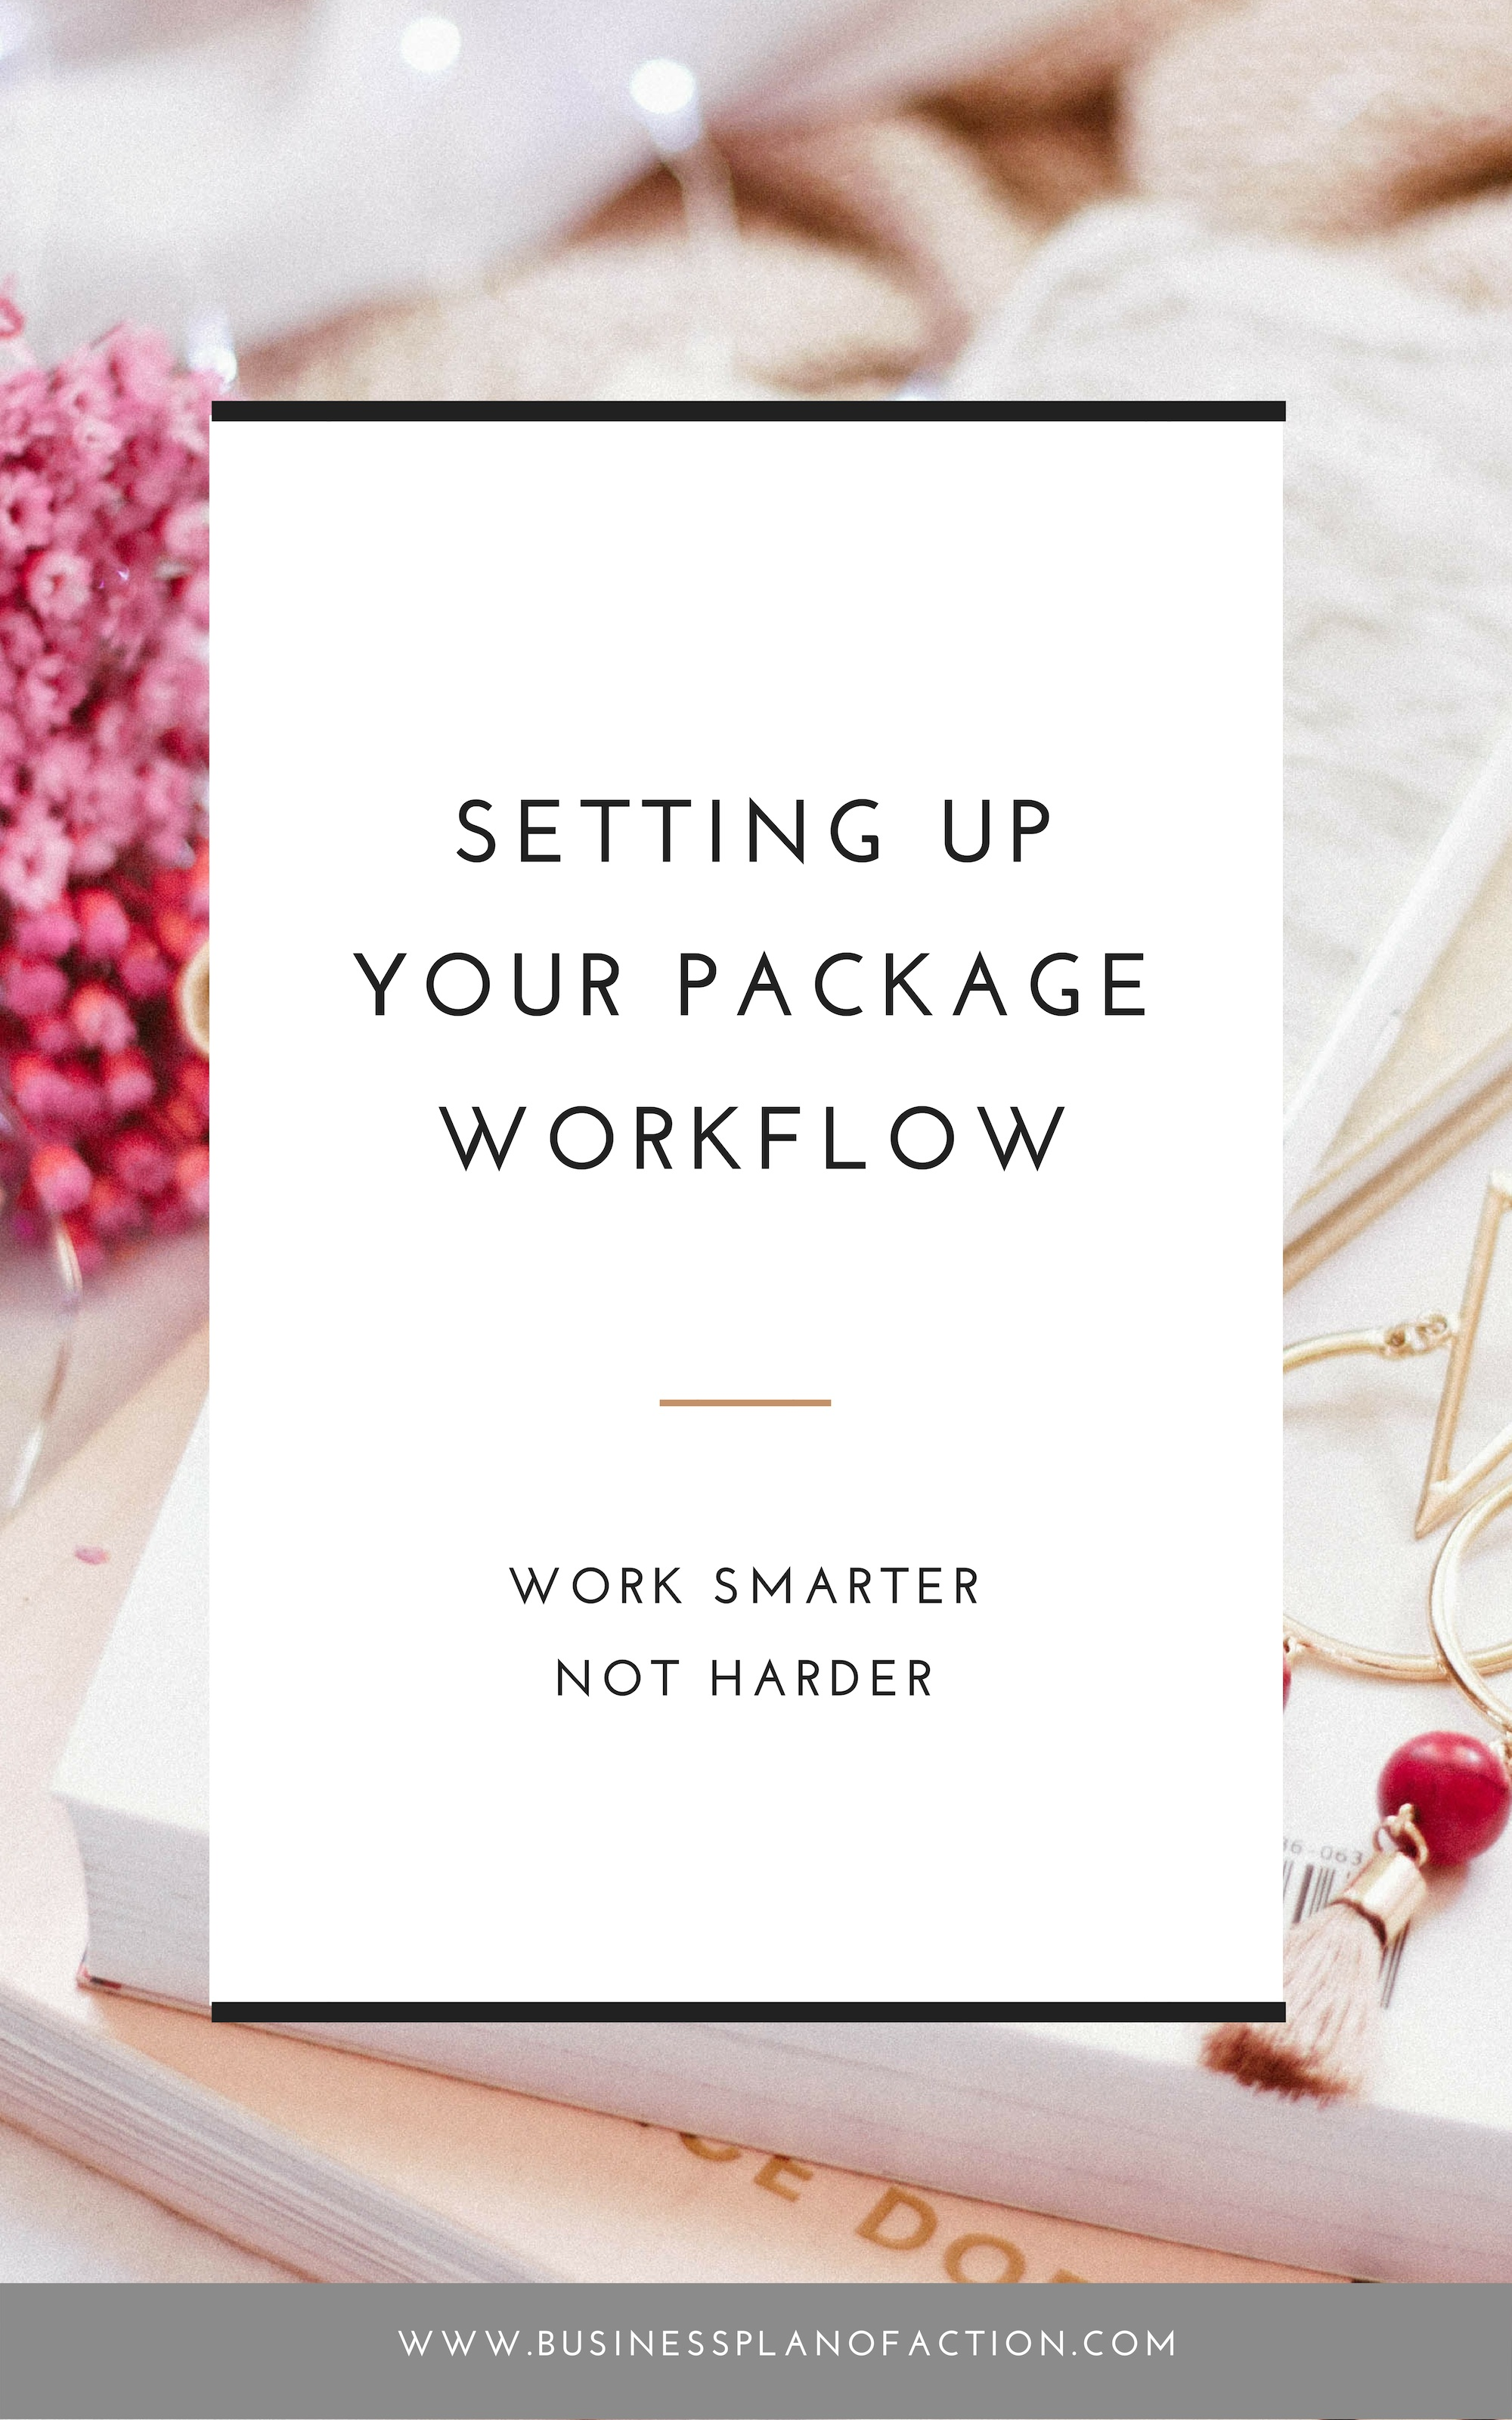 As your business grows, you need a workflow to move clients through your packages more smoothly—providing the best client experience possible. Find out how to get started.